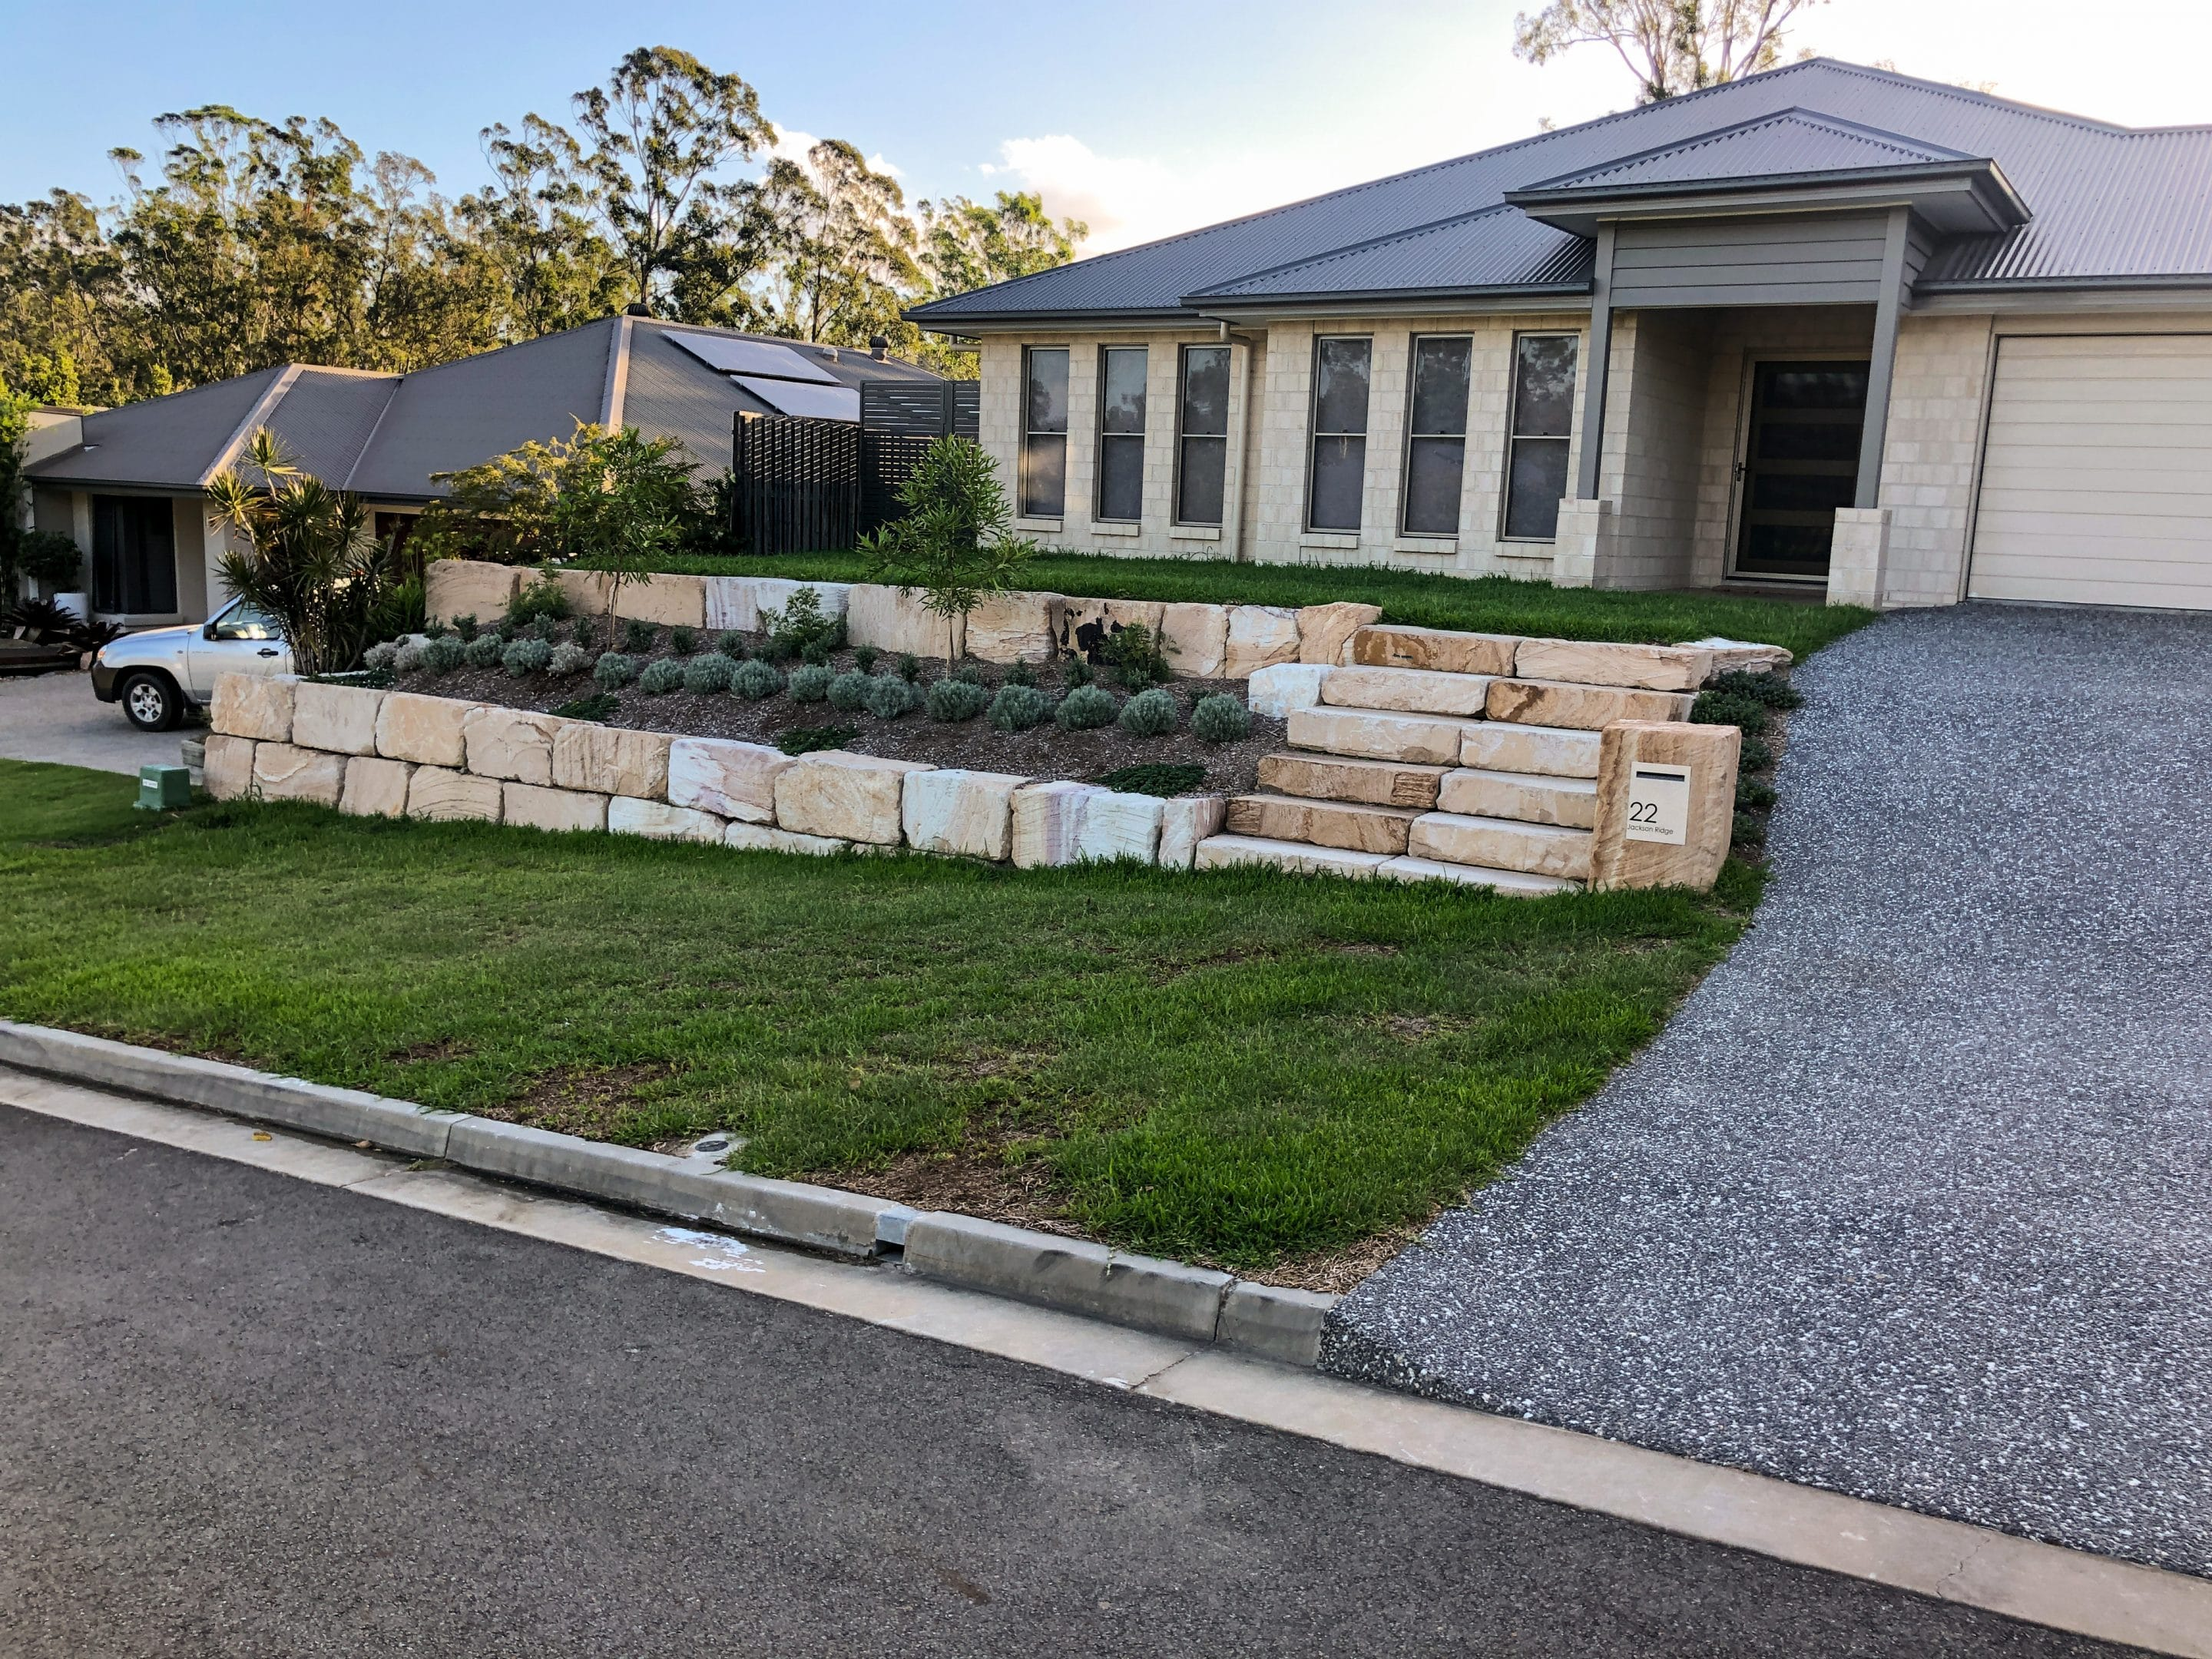 A beautifully designed rock wall made out of B grade sandstone, the wall is double tiered and is complemented by a sandstone letterbox and steps.